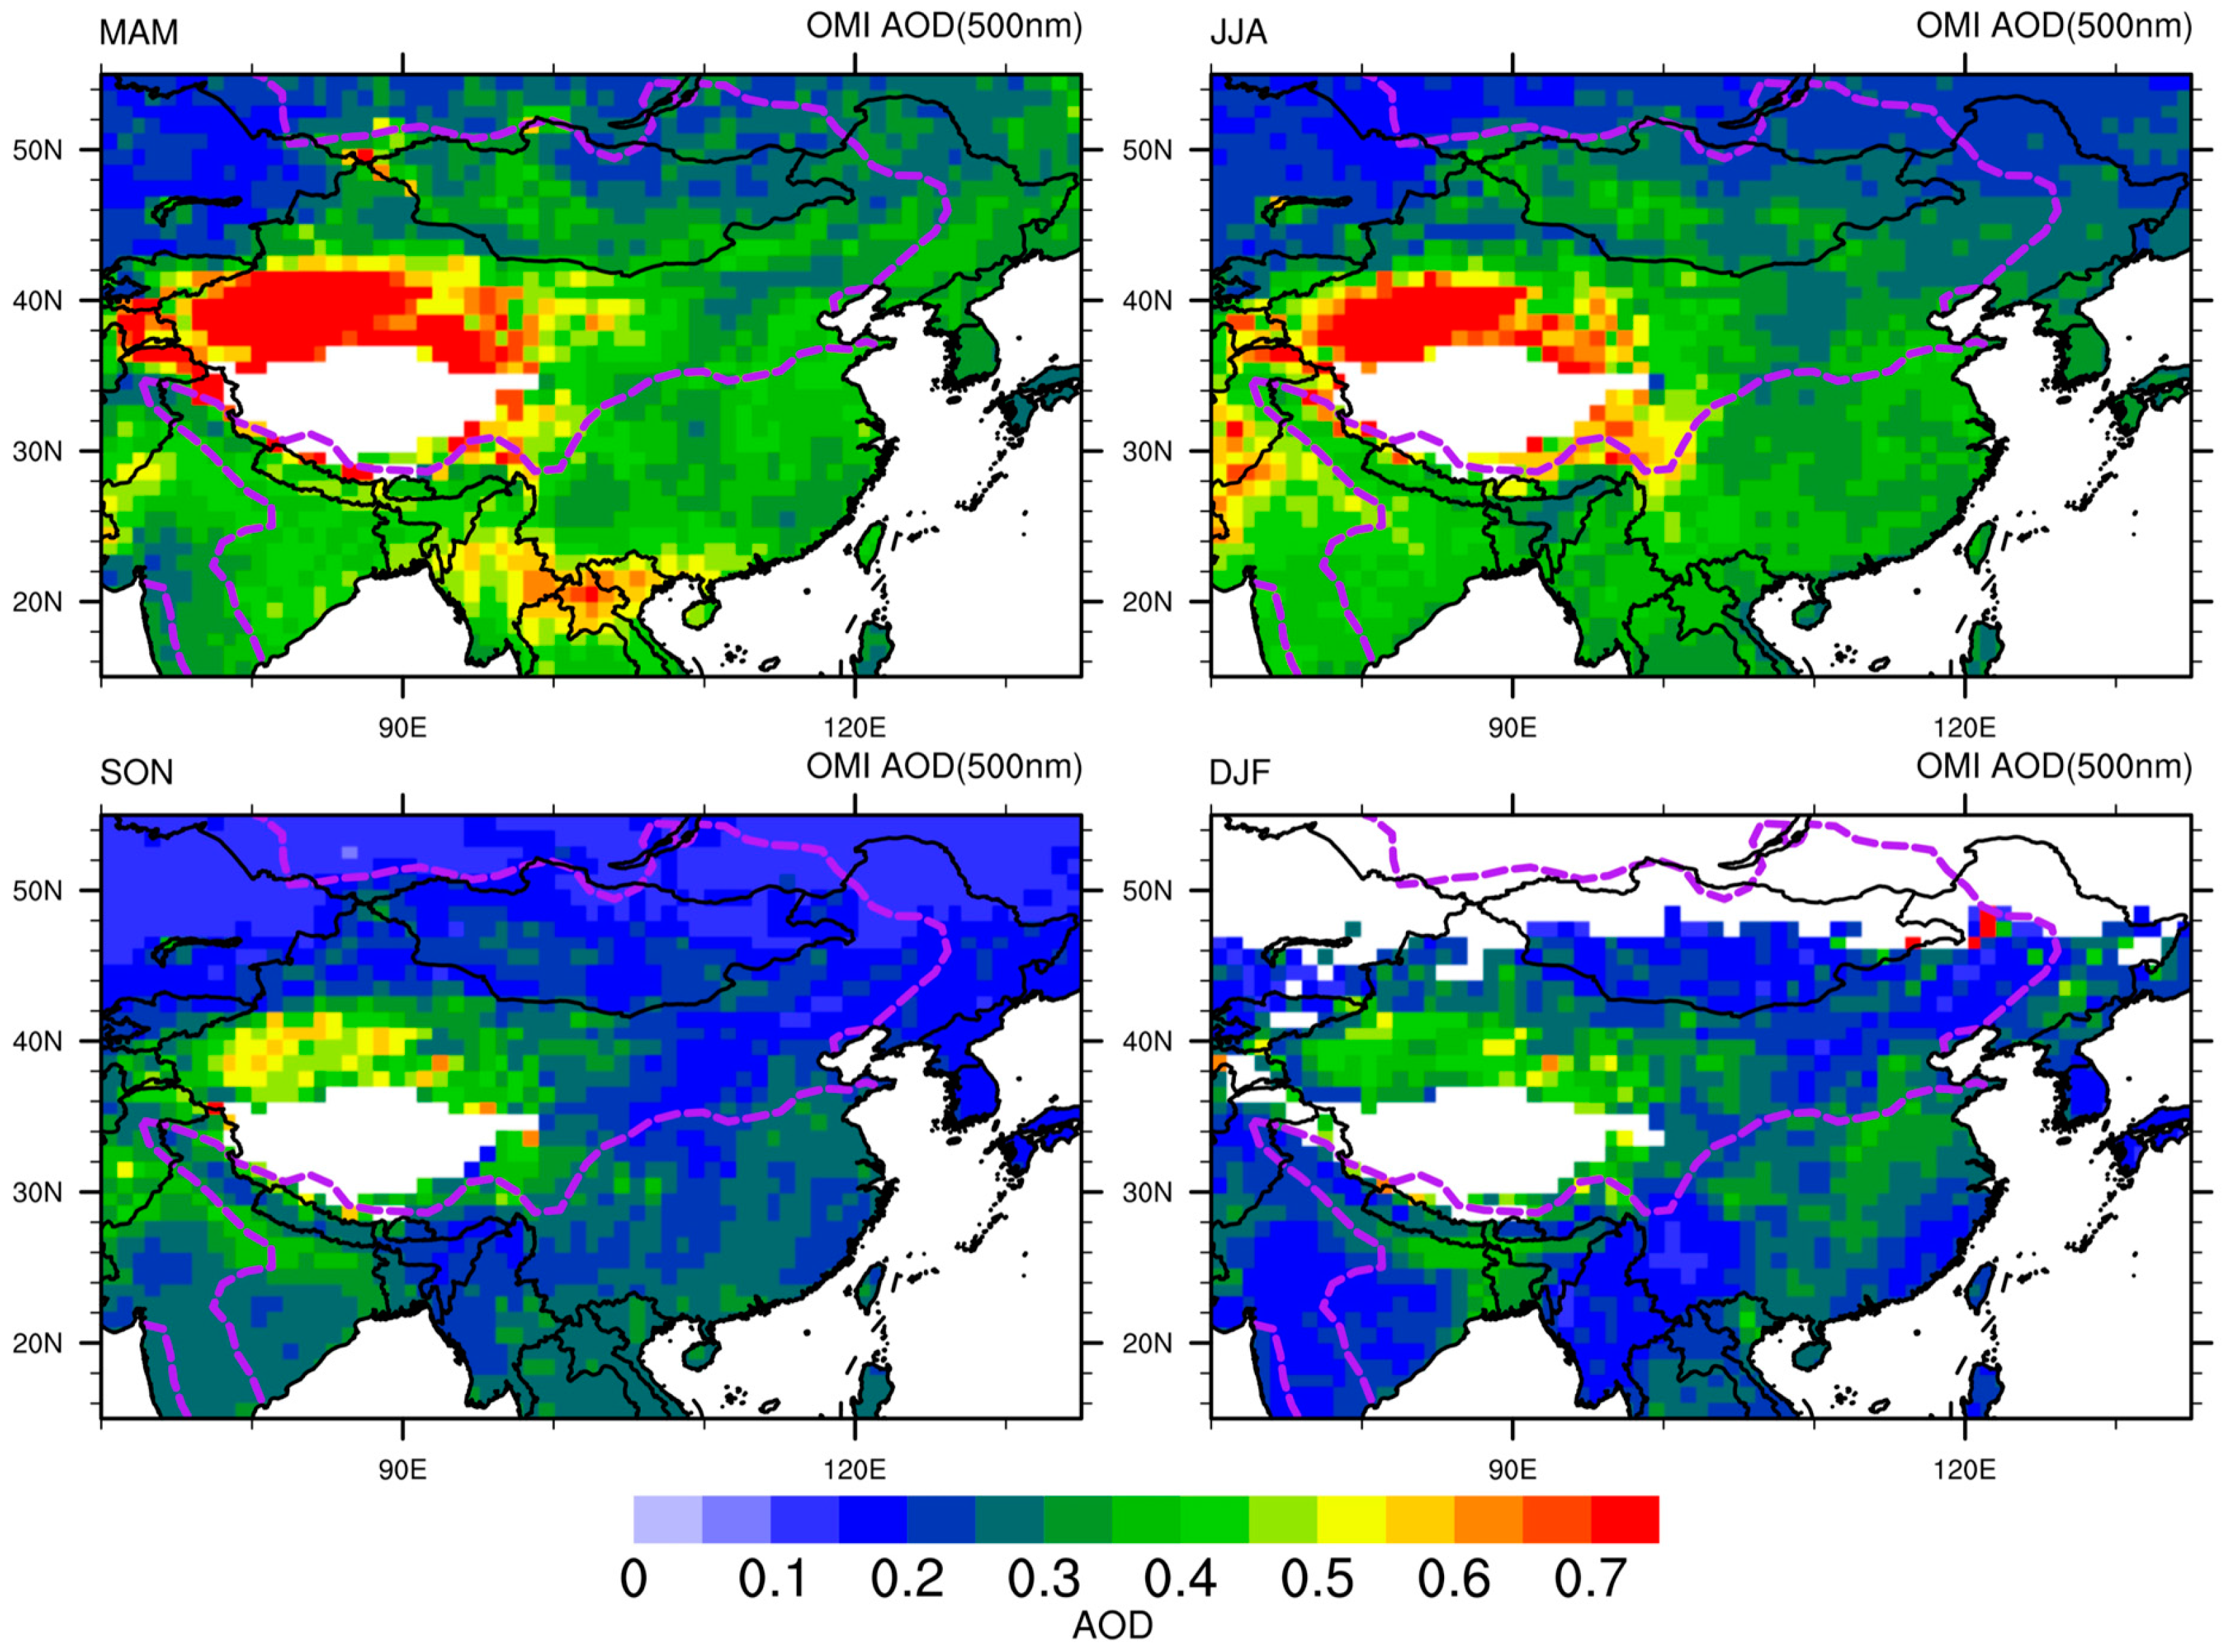 the impact of aerosols on solar National academy of sciences we evaluate the impact of aerosols on pv generation and find severe aerosol pollution over china reduces solar radiation.